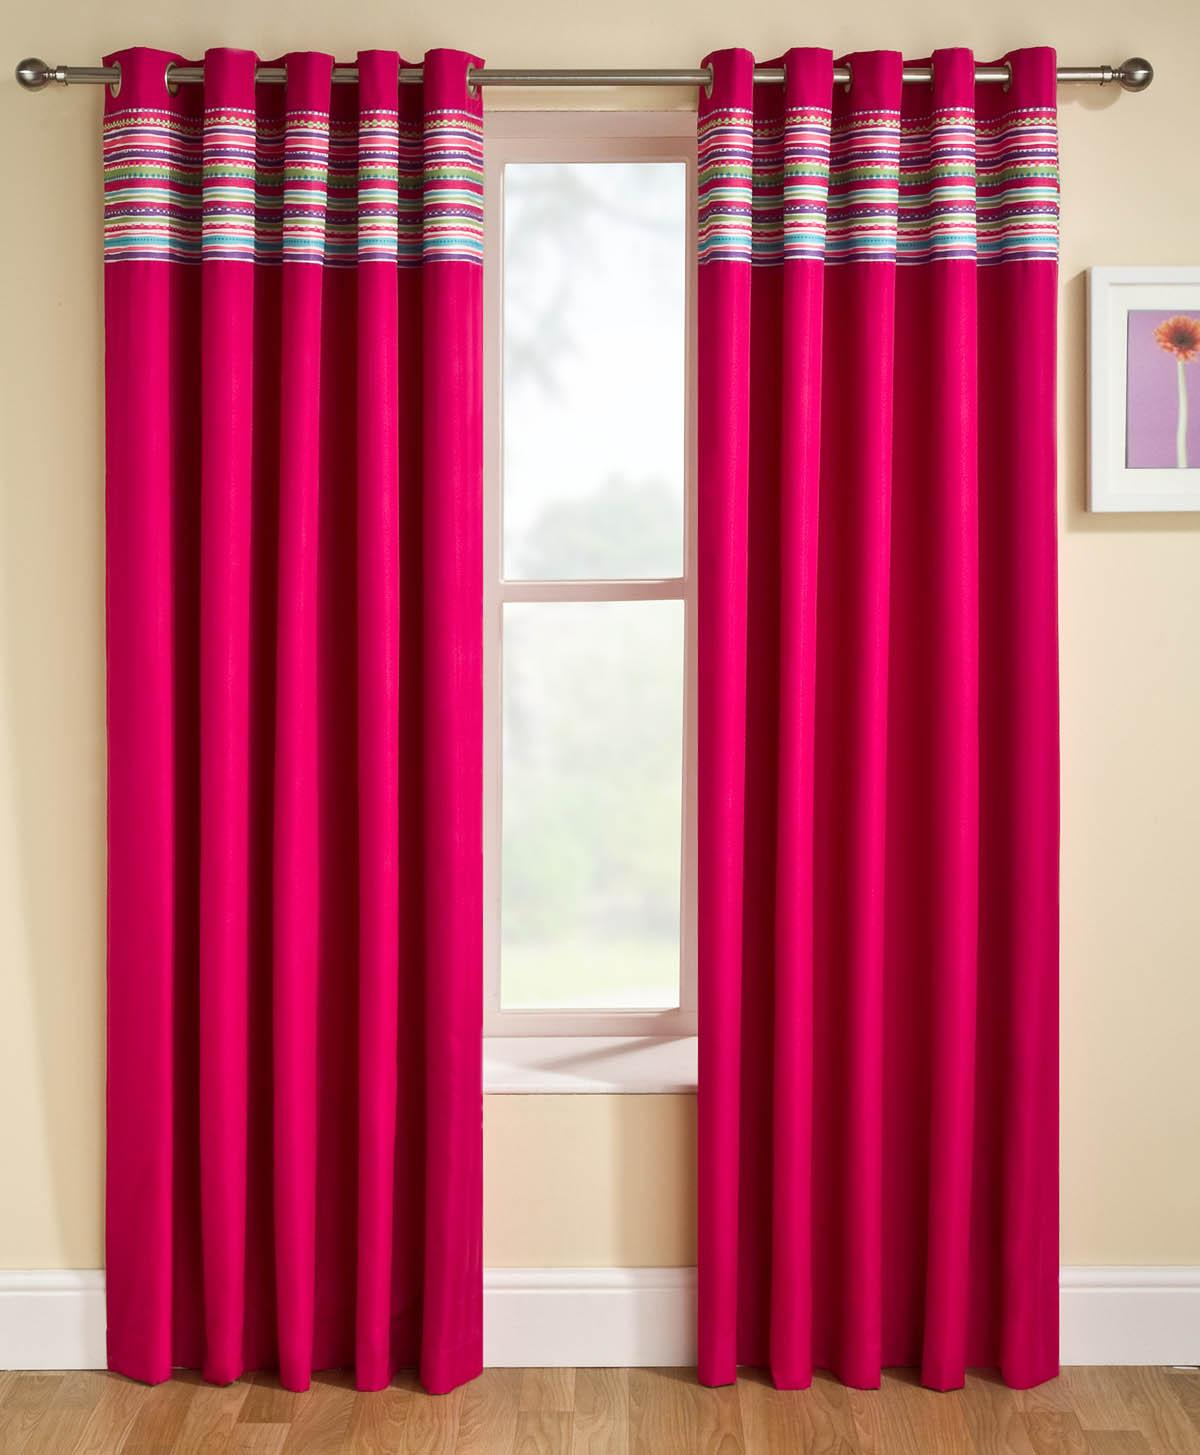 Blackout curtains for bedroom - Blackout Curtains For Living Room Living Room Curtains Ebay Siesta Blackout Ready Made Pencil Pleat